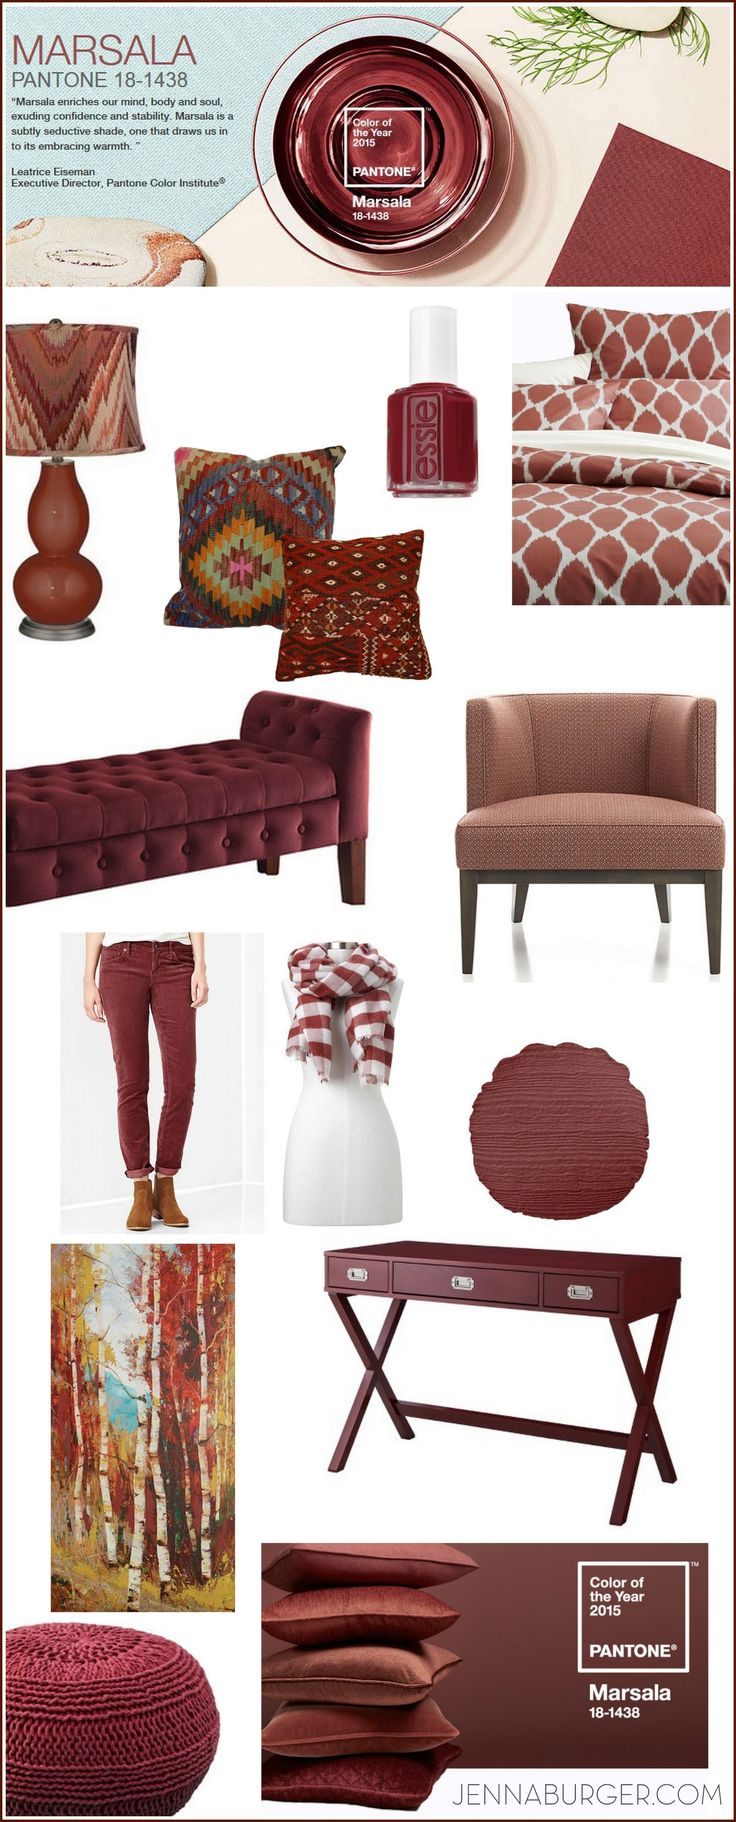 Pantone Color of the Year 2015: Marsala. From fashion to home, this brown-red hue for 2015 can be incorporated in every way